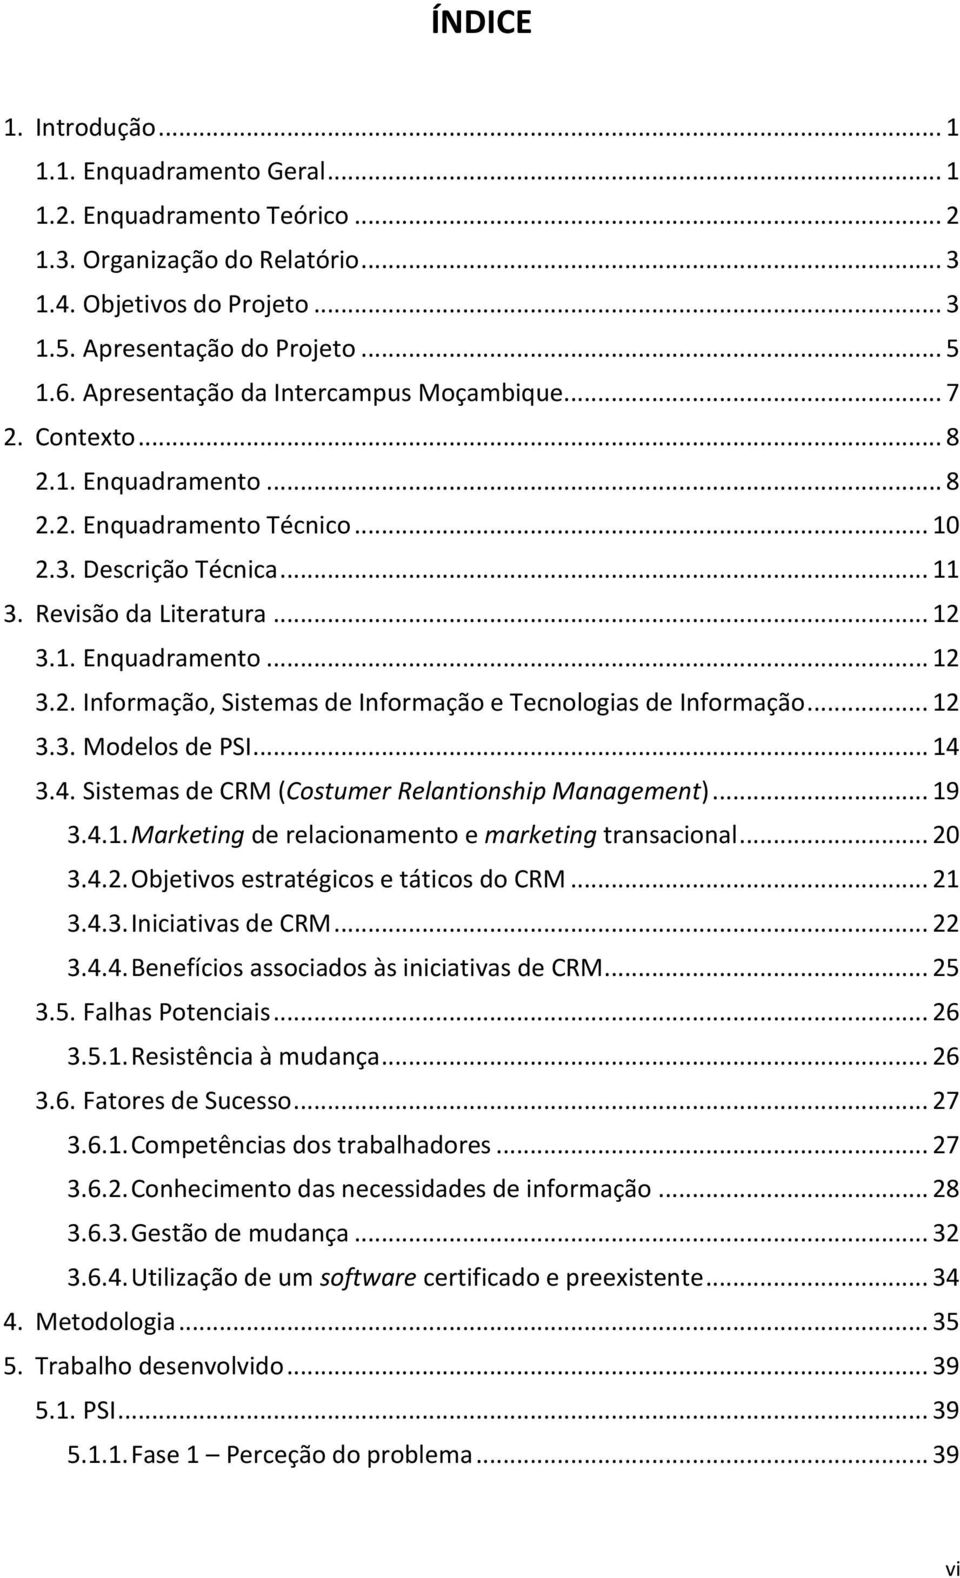 .. 12 3.3. Modelos de PSI... 14 3.4. Sistemas de CRM (Costumer Relantionship Management)... 19 3.4.1. Marketing de relacionamento e marketing transacional... 20 3.4.2. Objetivos estratégicos e táticos do CRM.